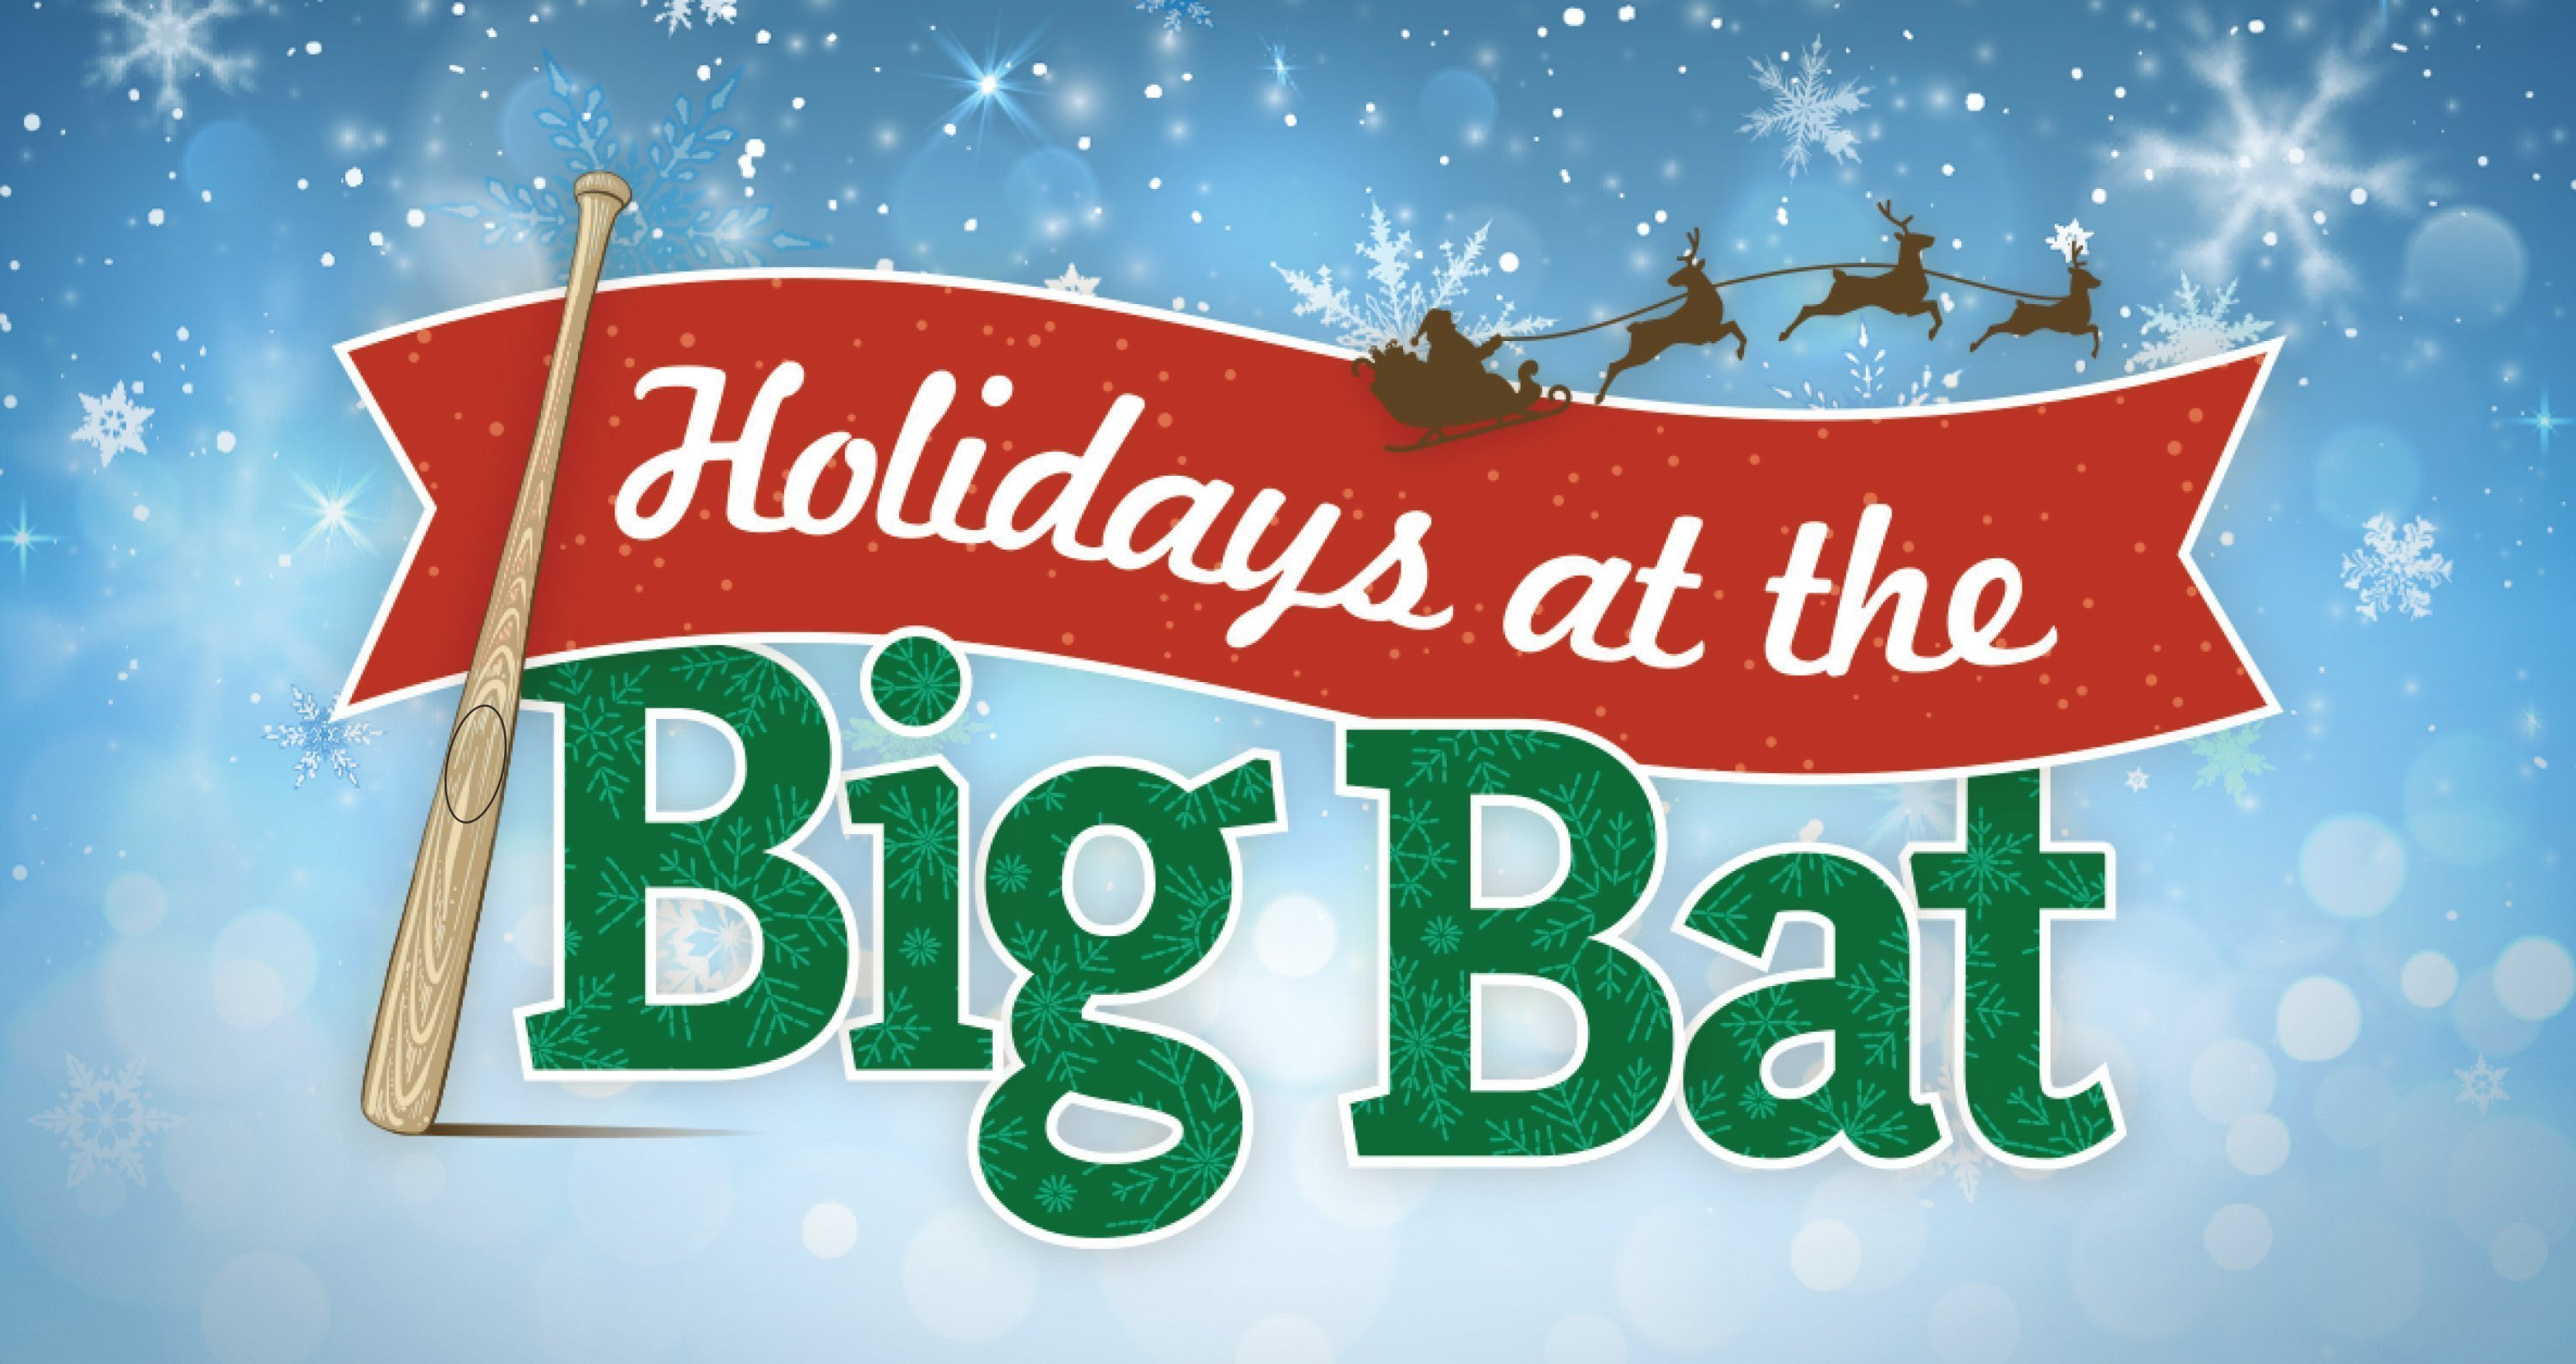 Holidays at The Big Bat